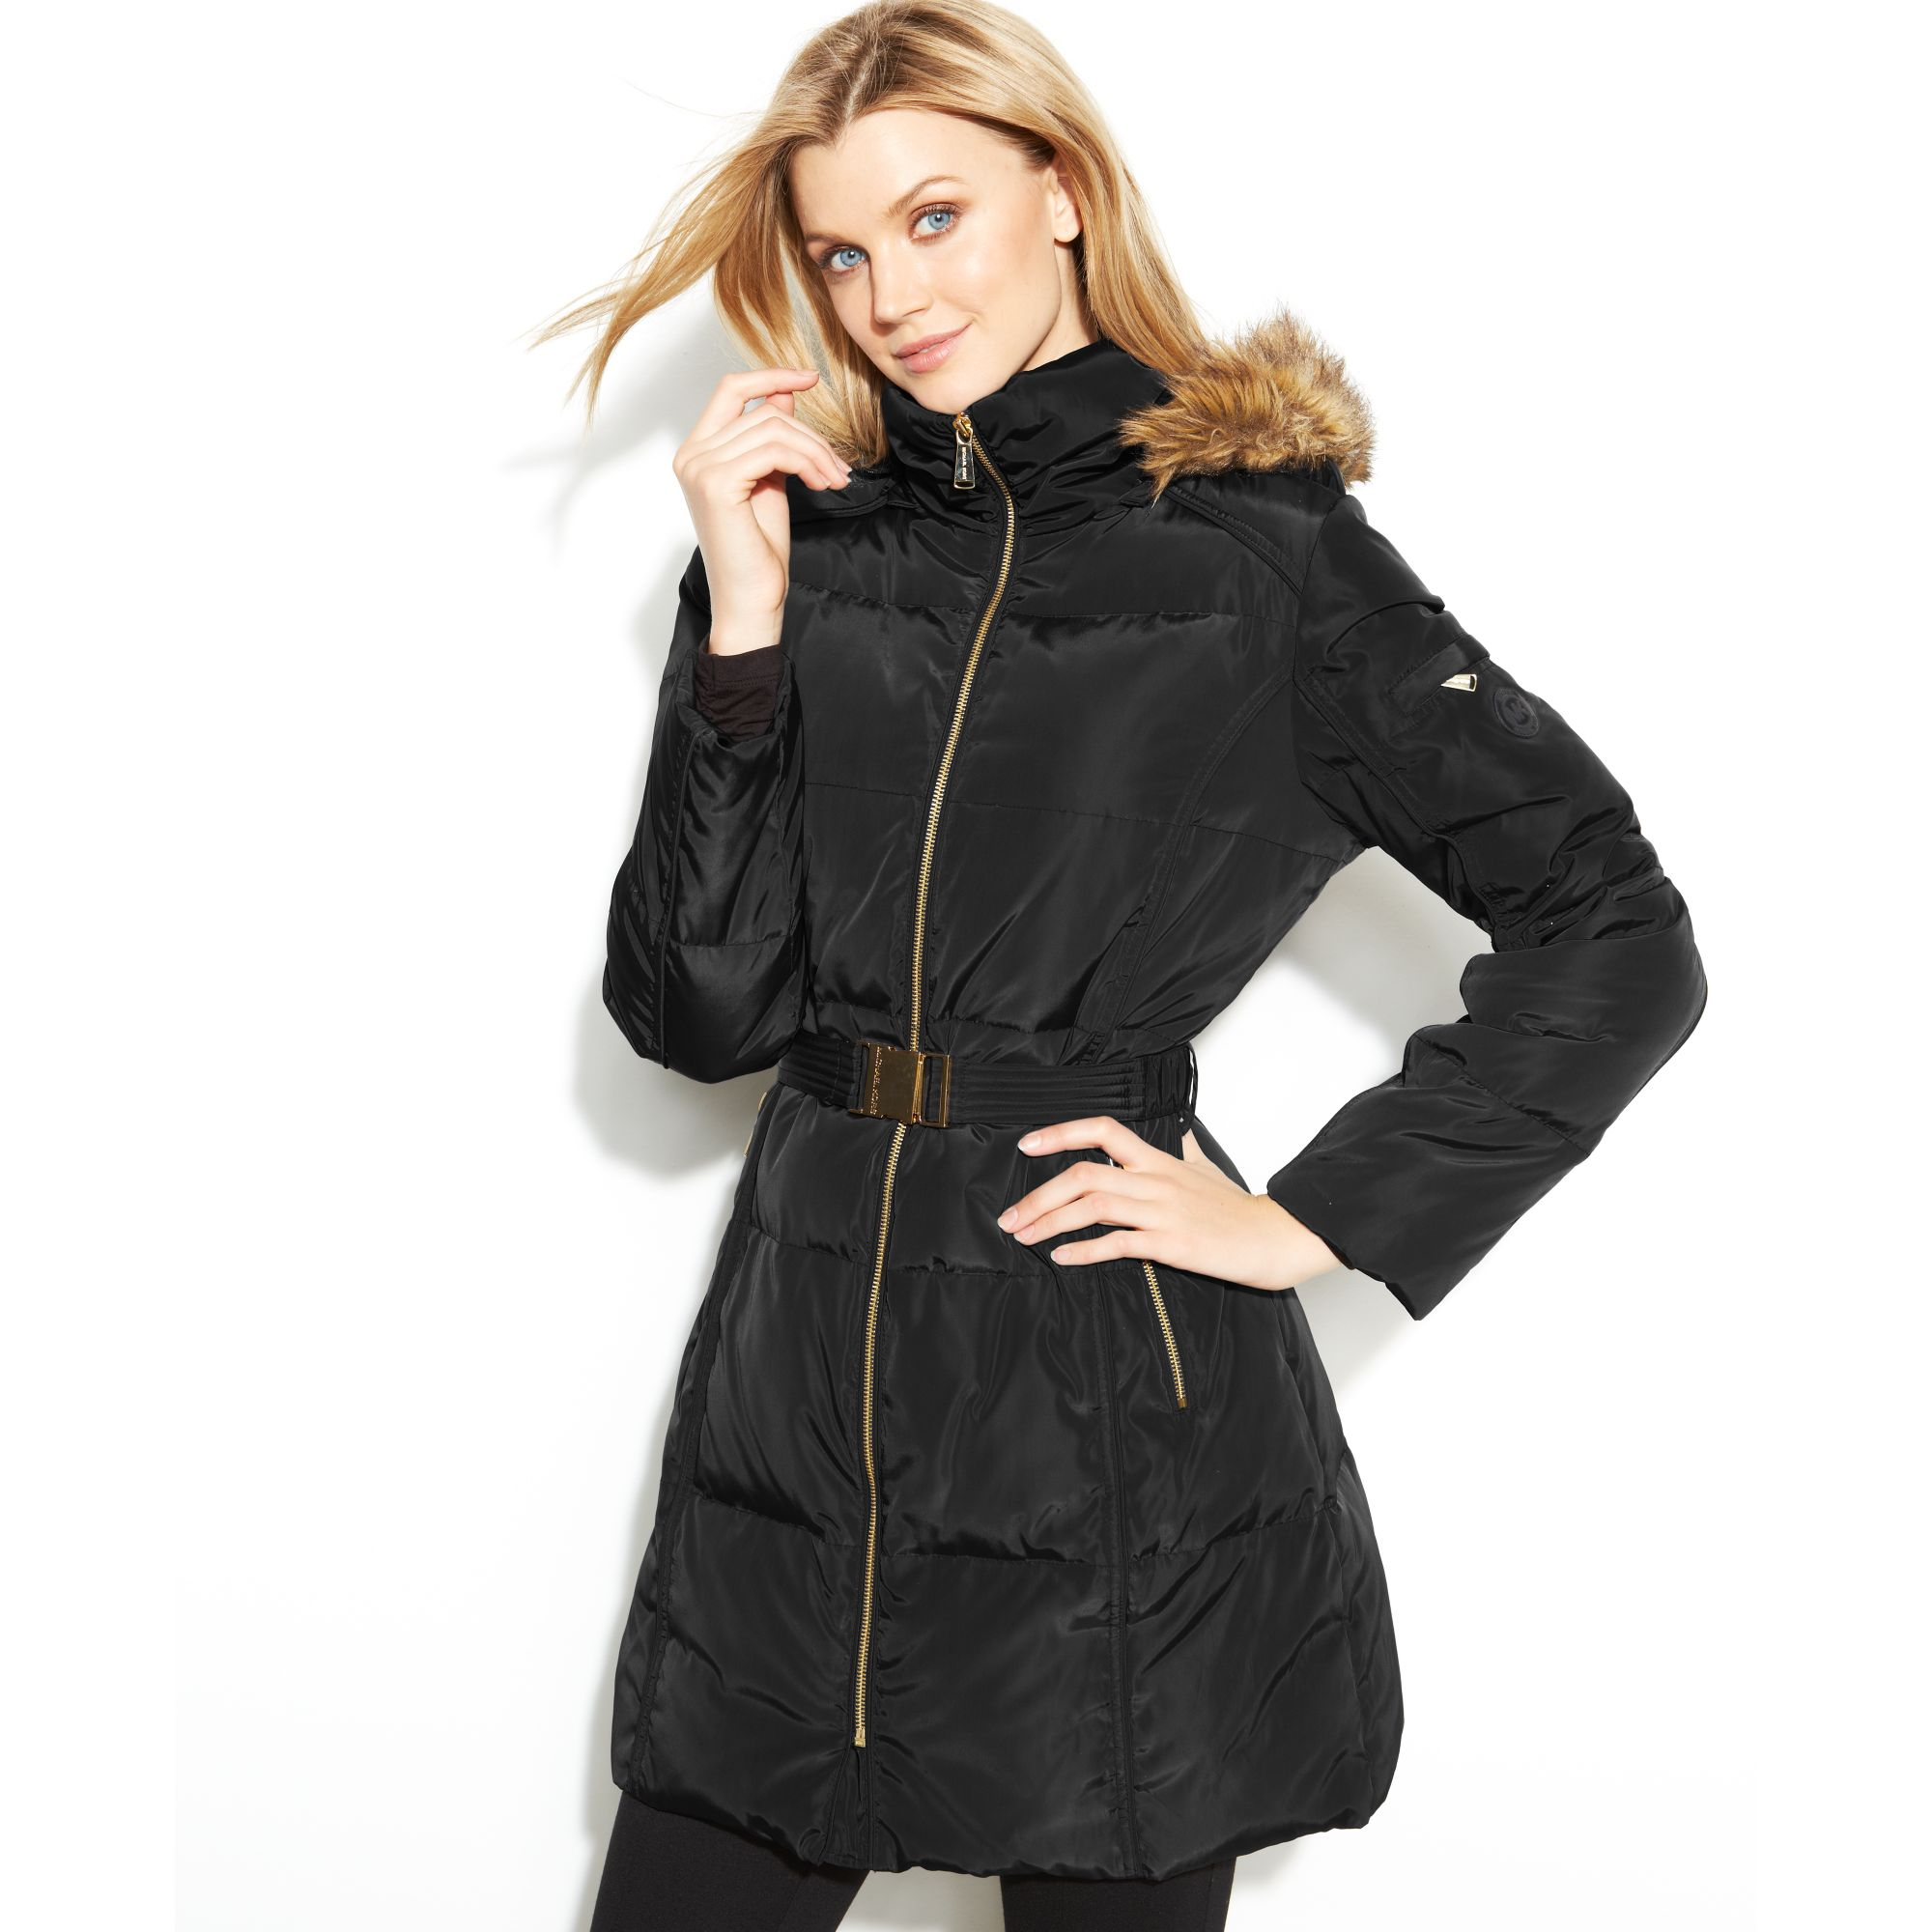 Michael kors Hooded Faux-fur-trim Belted Puffer in Black | Lyst